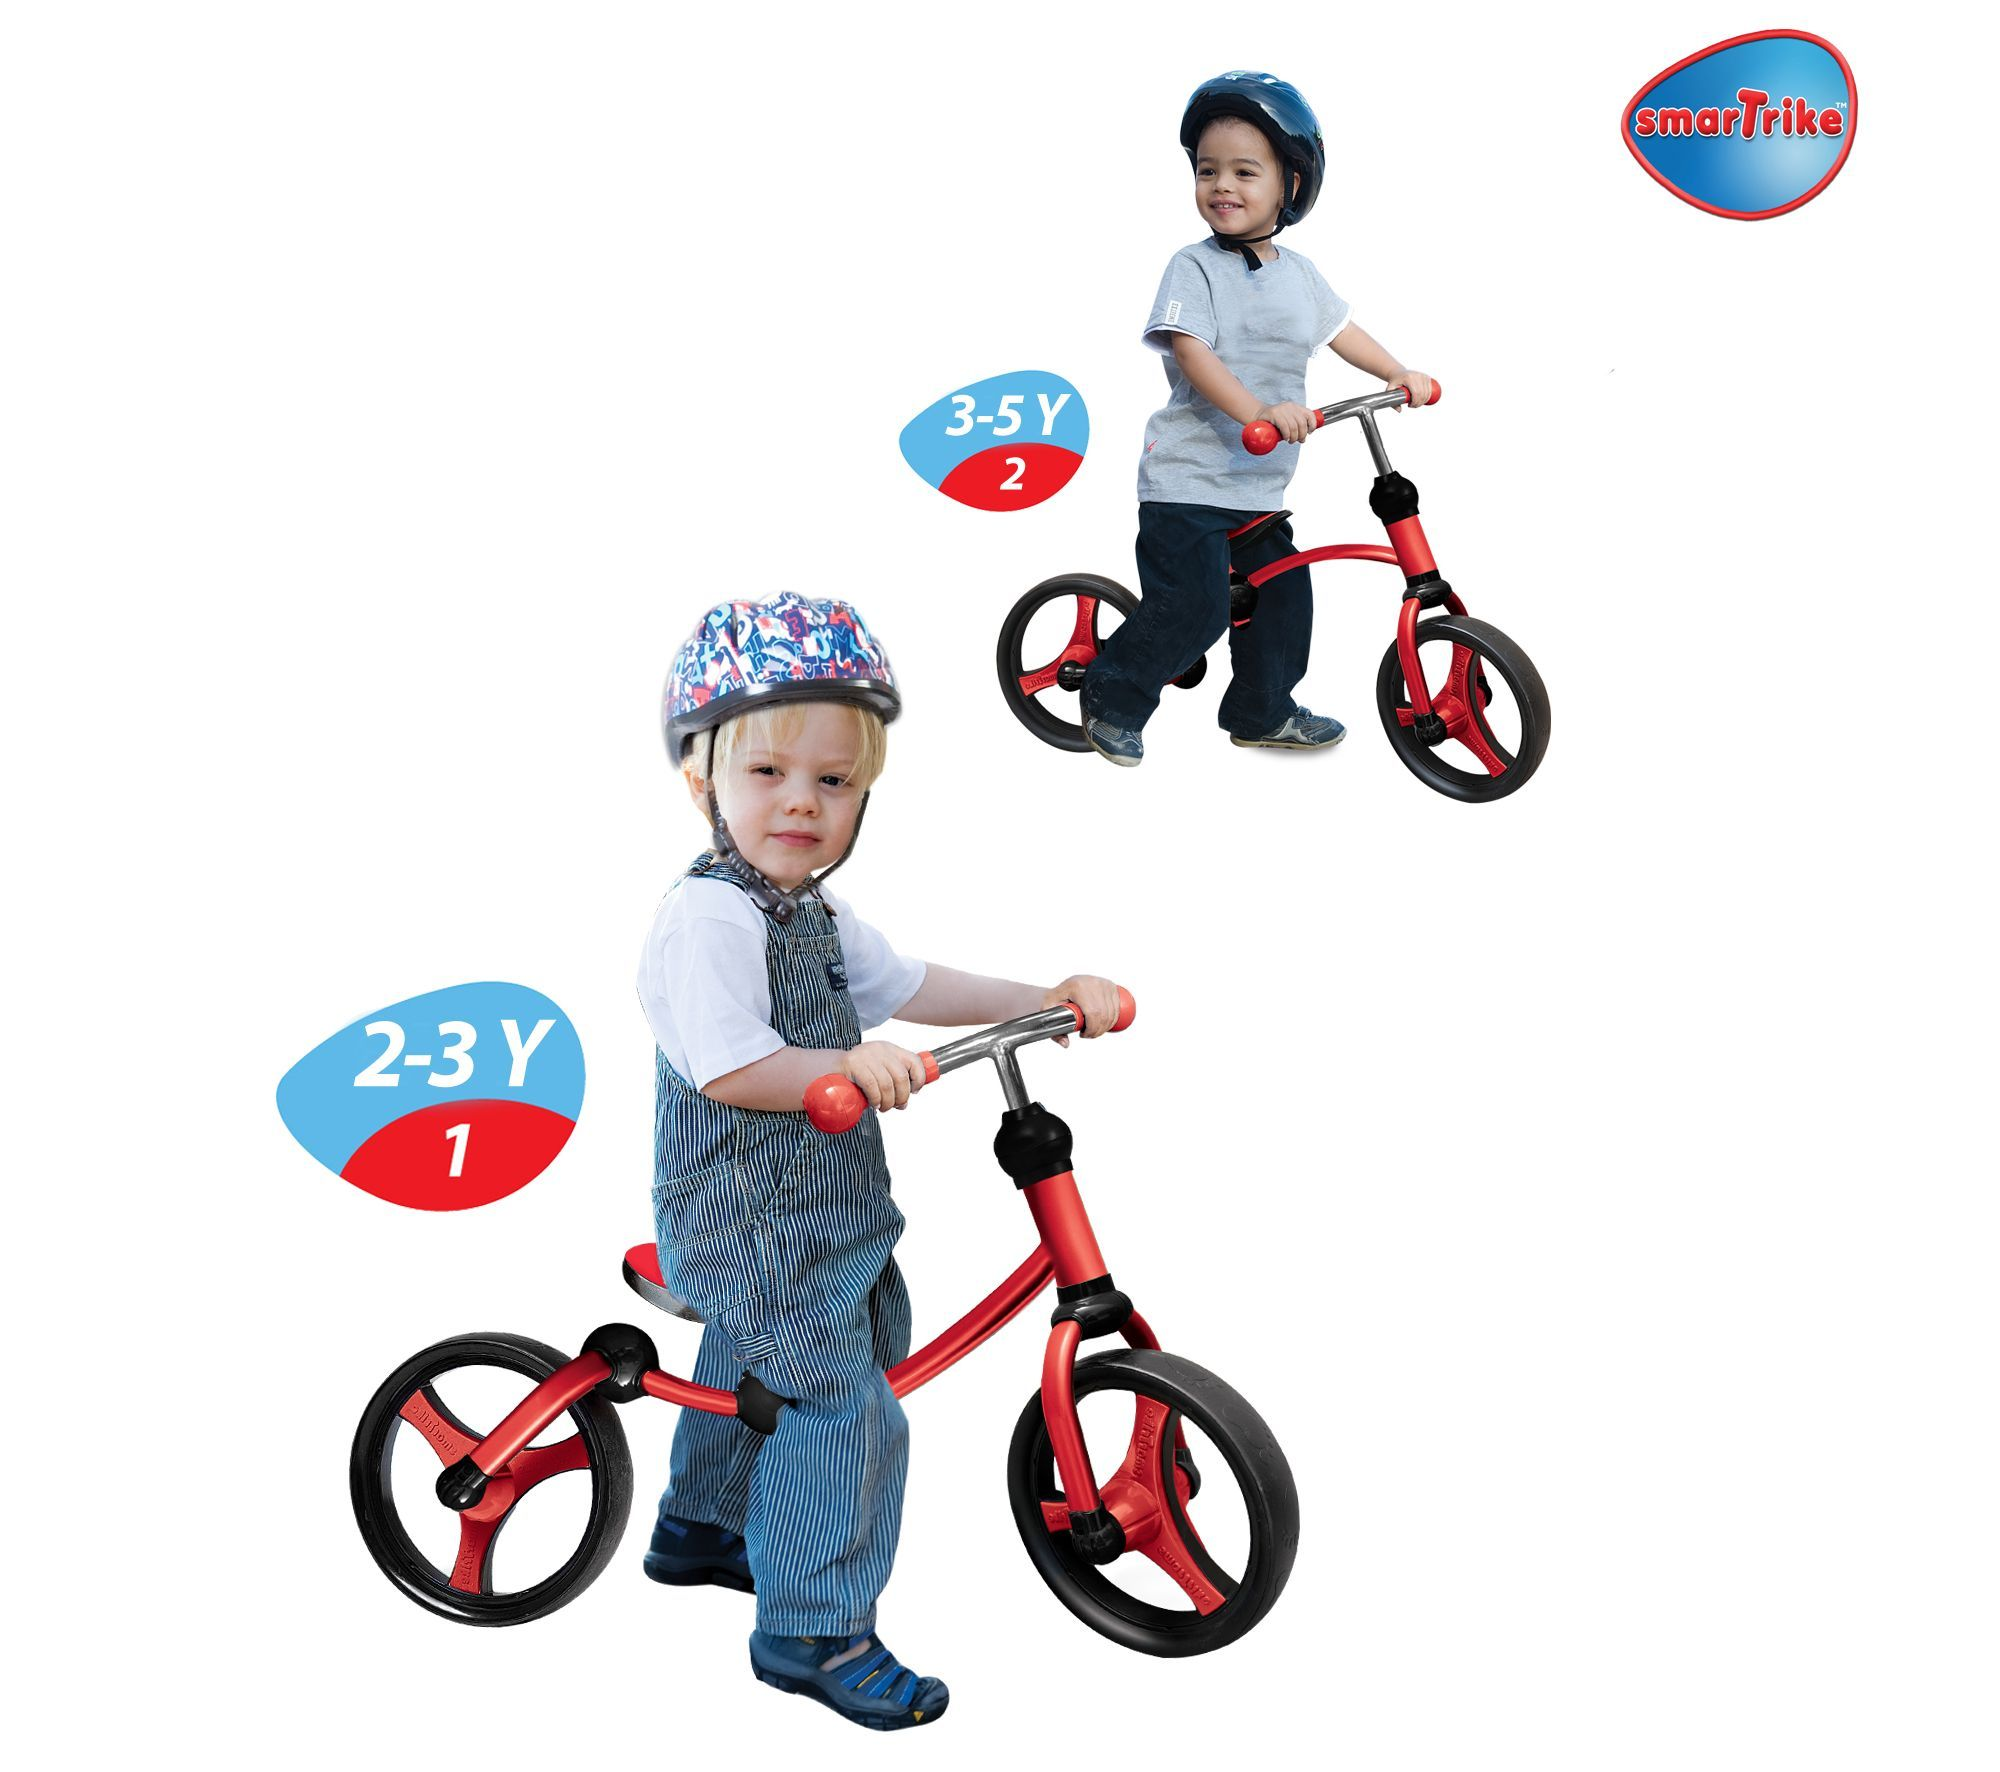 Don T We All Need To Ad Some Life To Our Days Kids Bike Kids